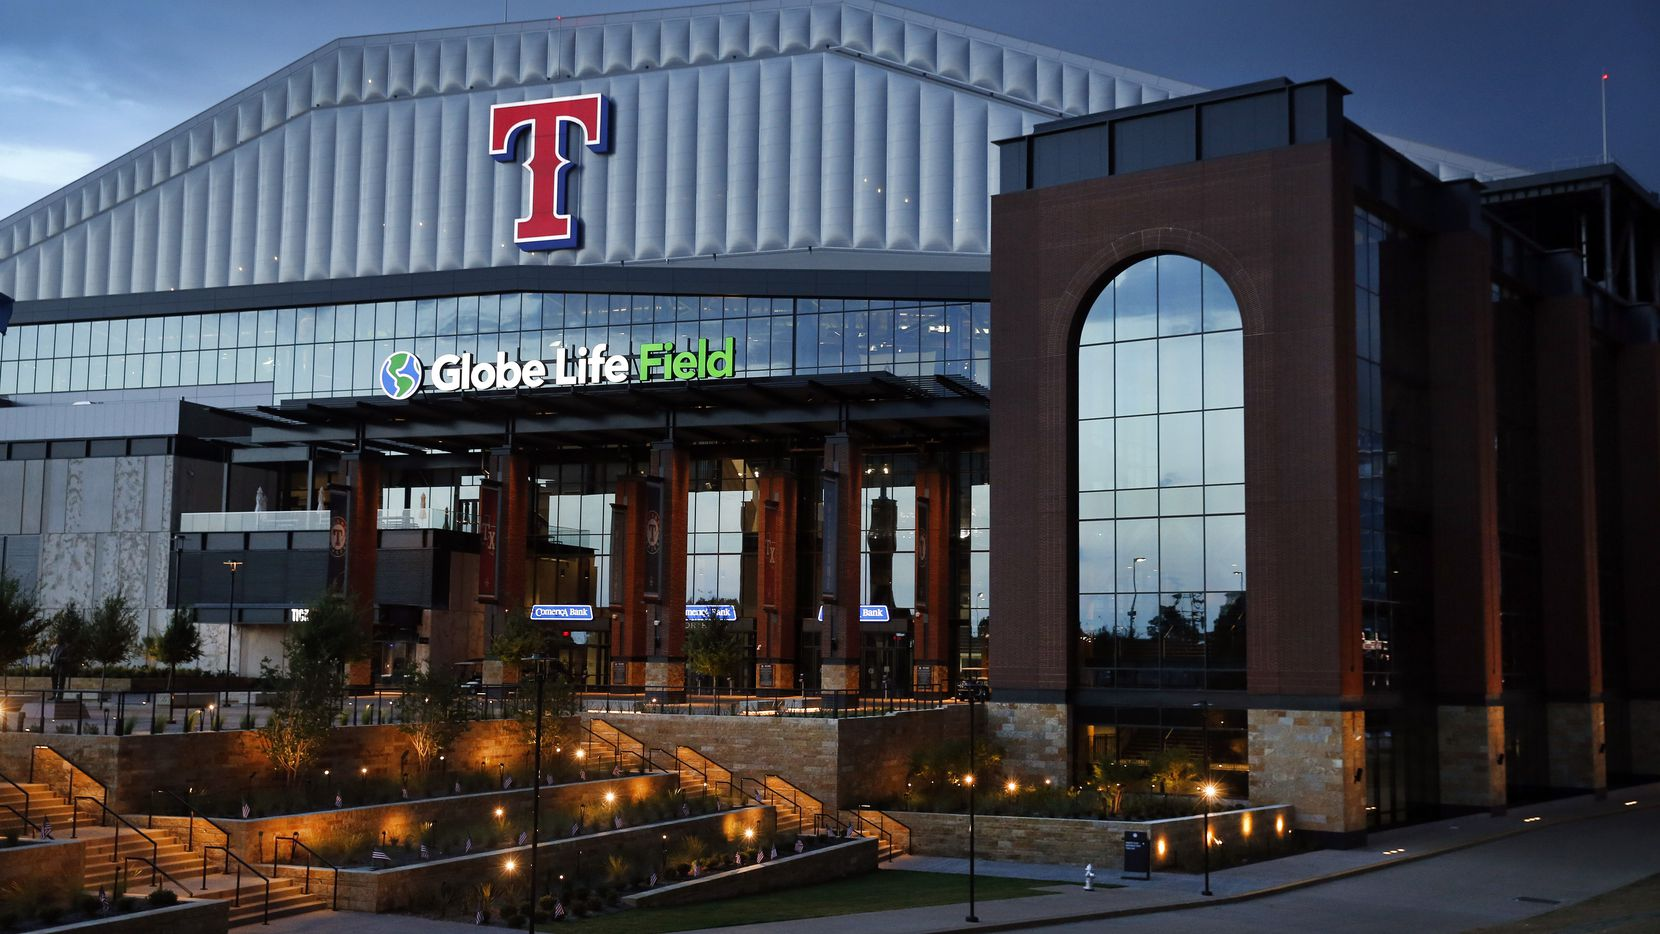 Pictured: Globe Life Field in Arlington, Texas.